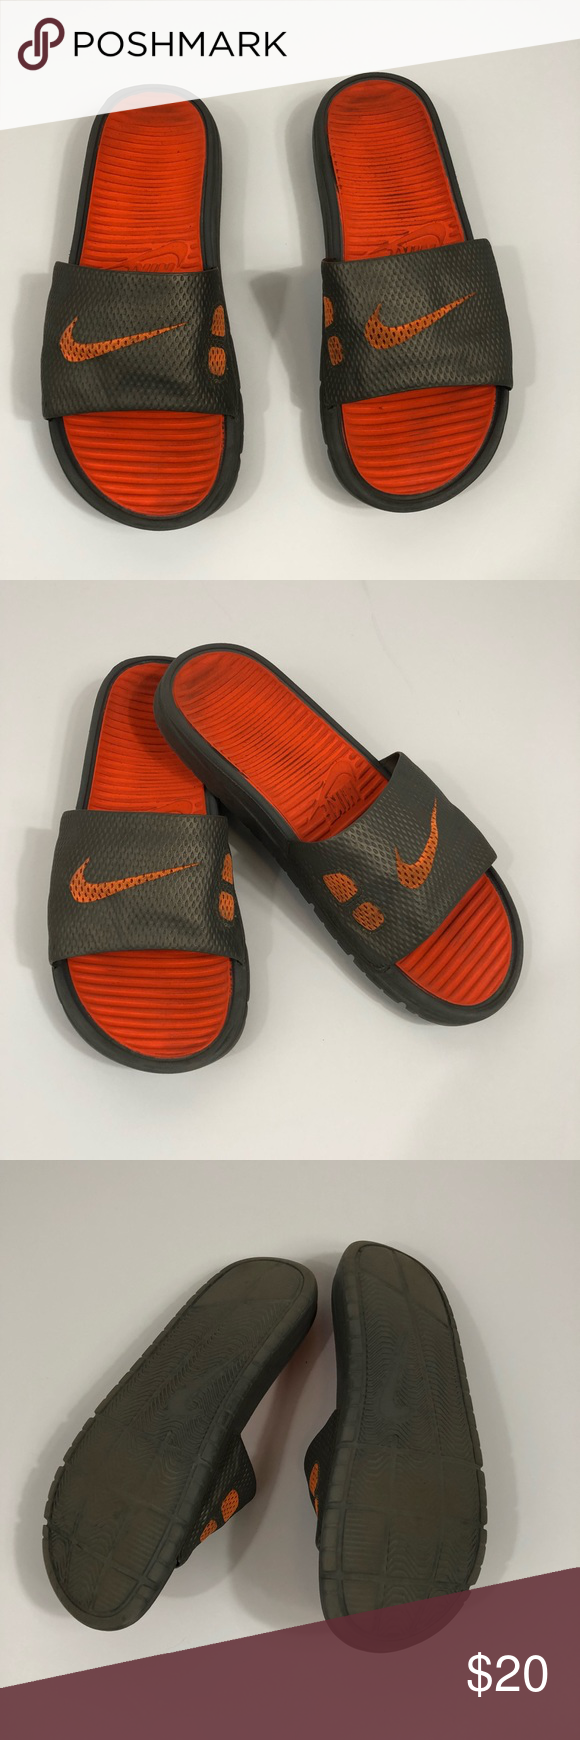 a177a1161ae512  Nike  Orange + Gray Slides Good used condition! Size mens 8 will fits